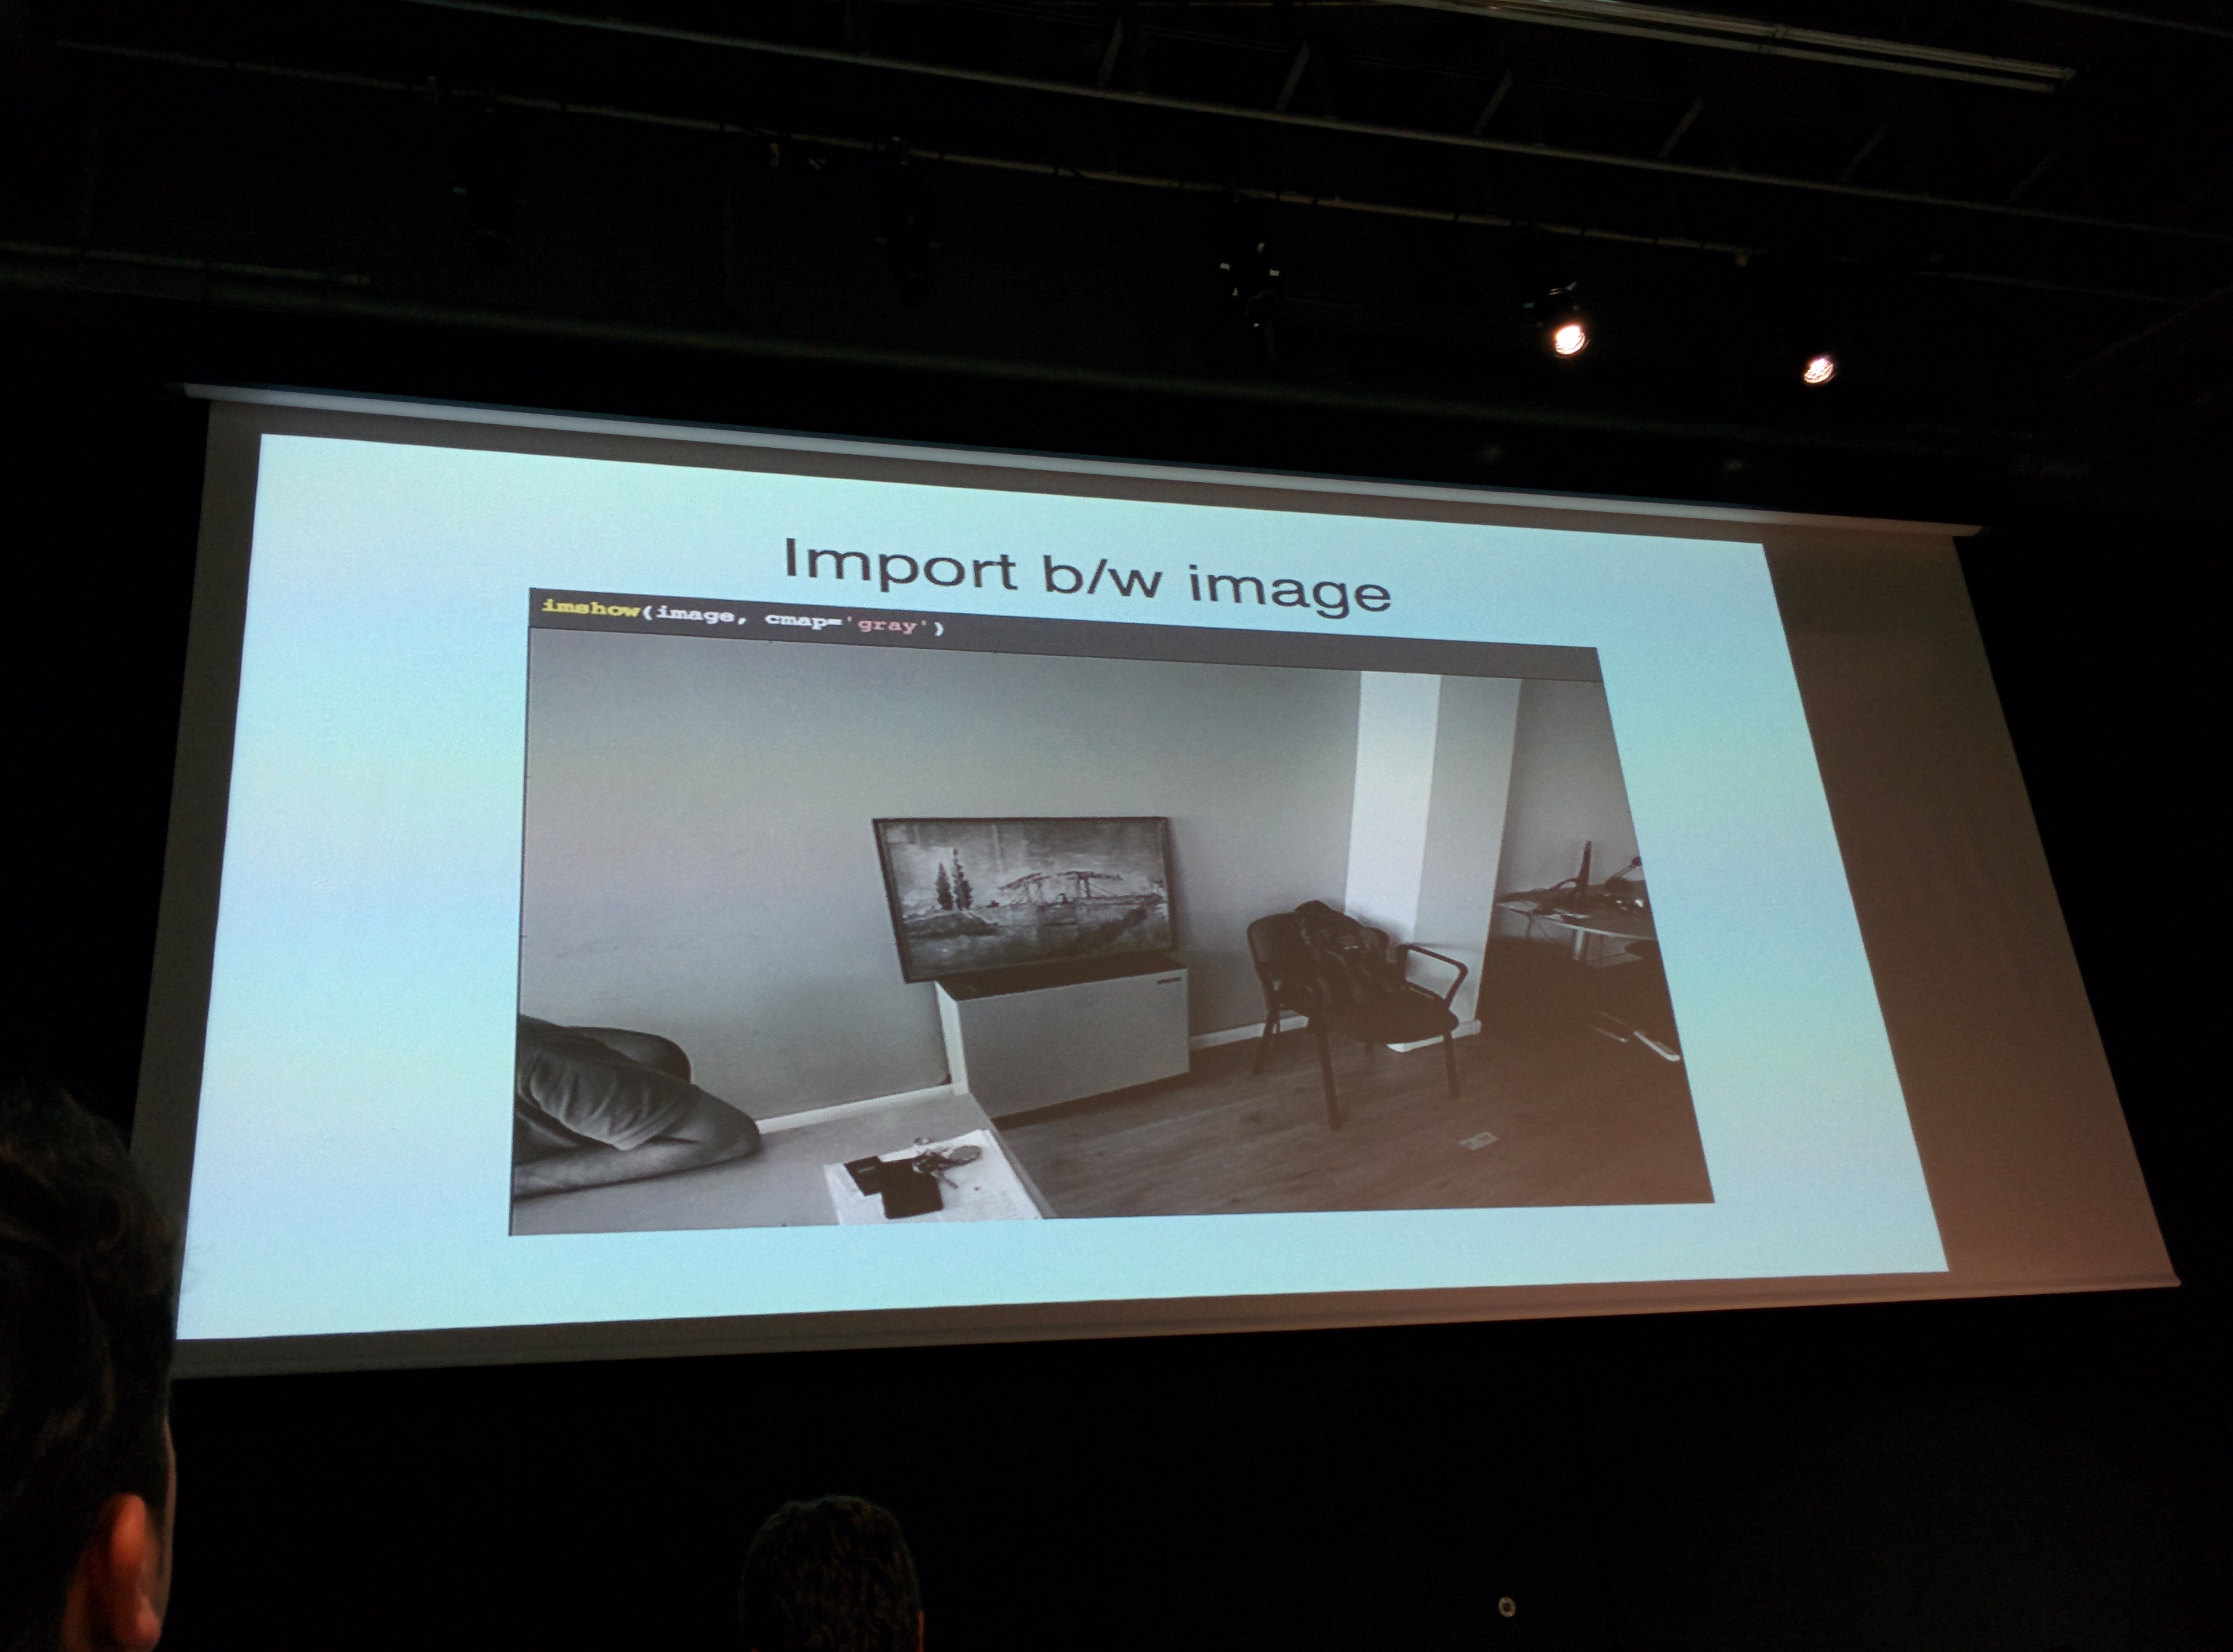 OpenCV detecting in B/W